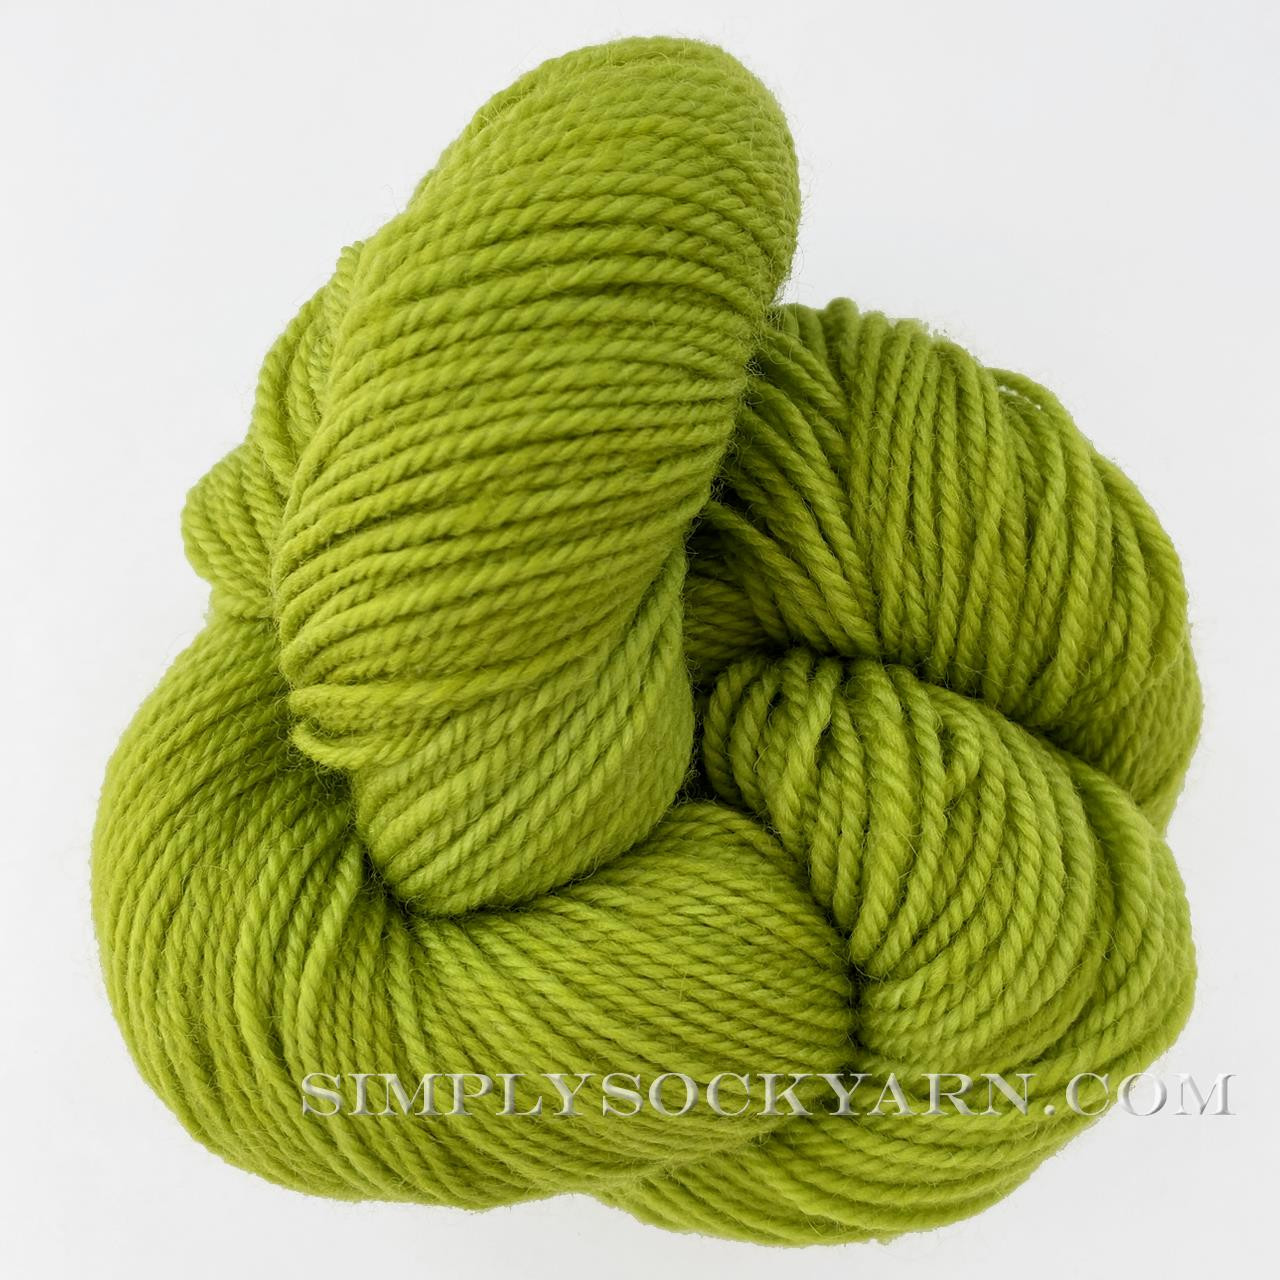 SSY Solid 515 Fiesta Lime -